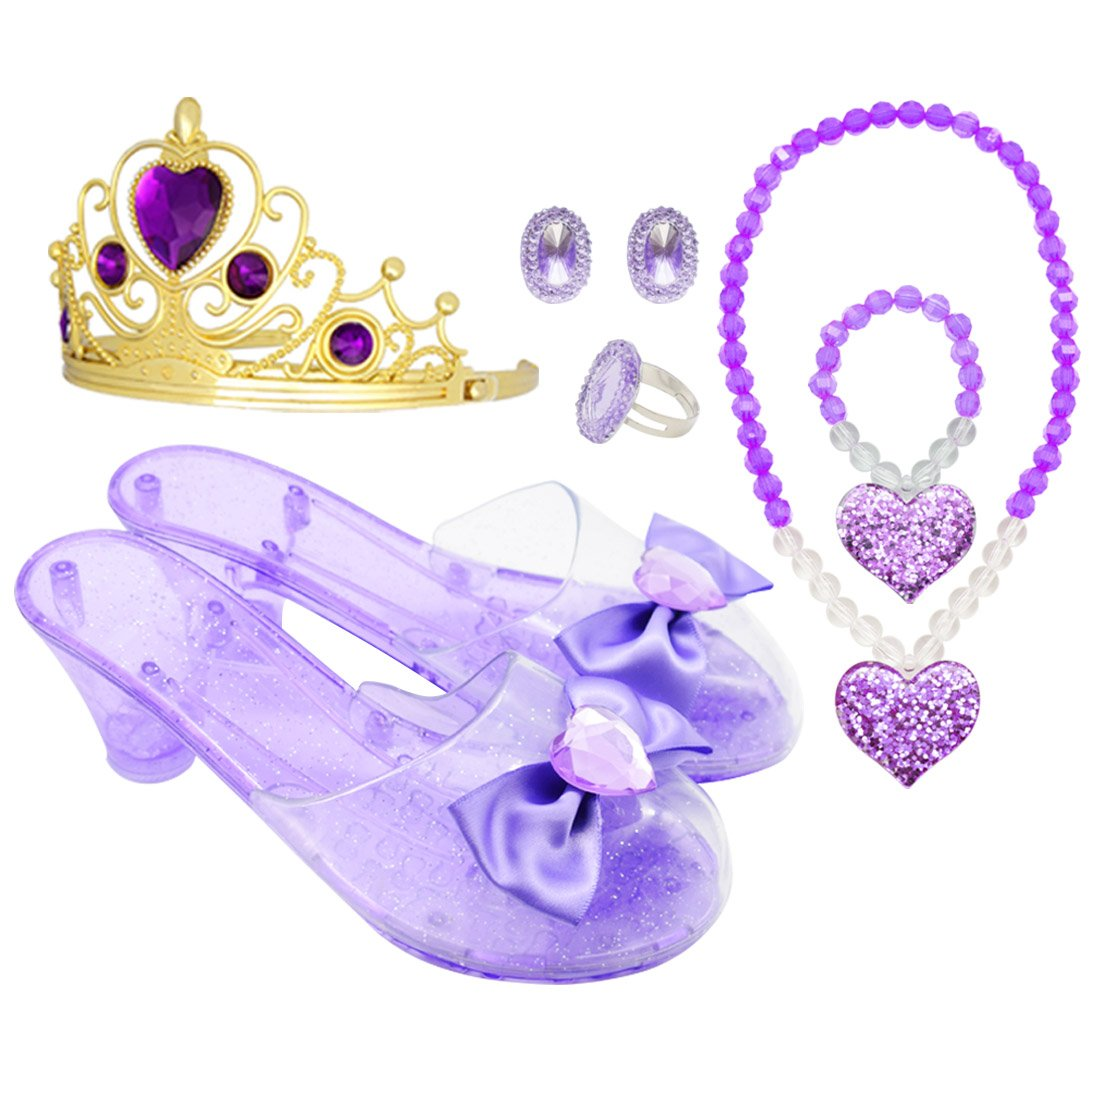 Princess Accessory Dress up Set,Shoes Necklace and Tiara Set,Fashion Beauty Set for Girls (Pur)